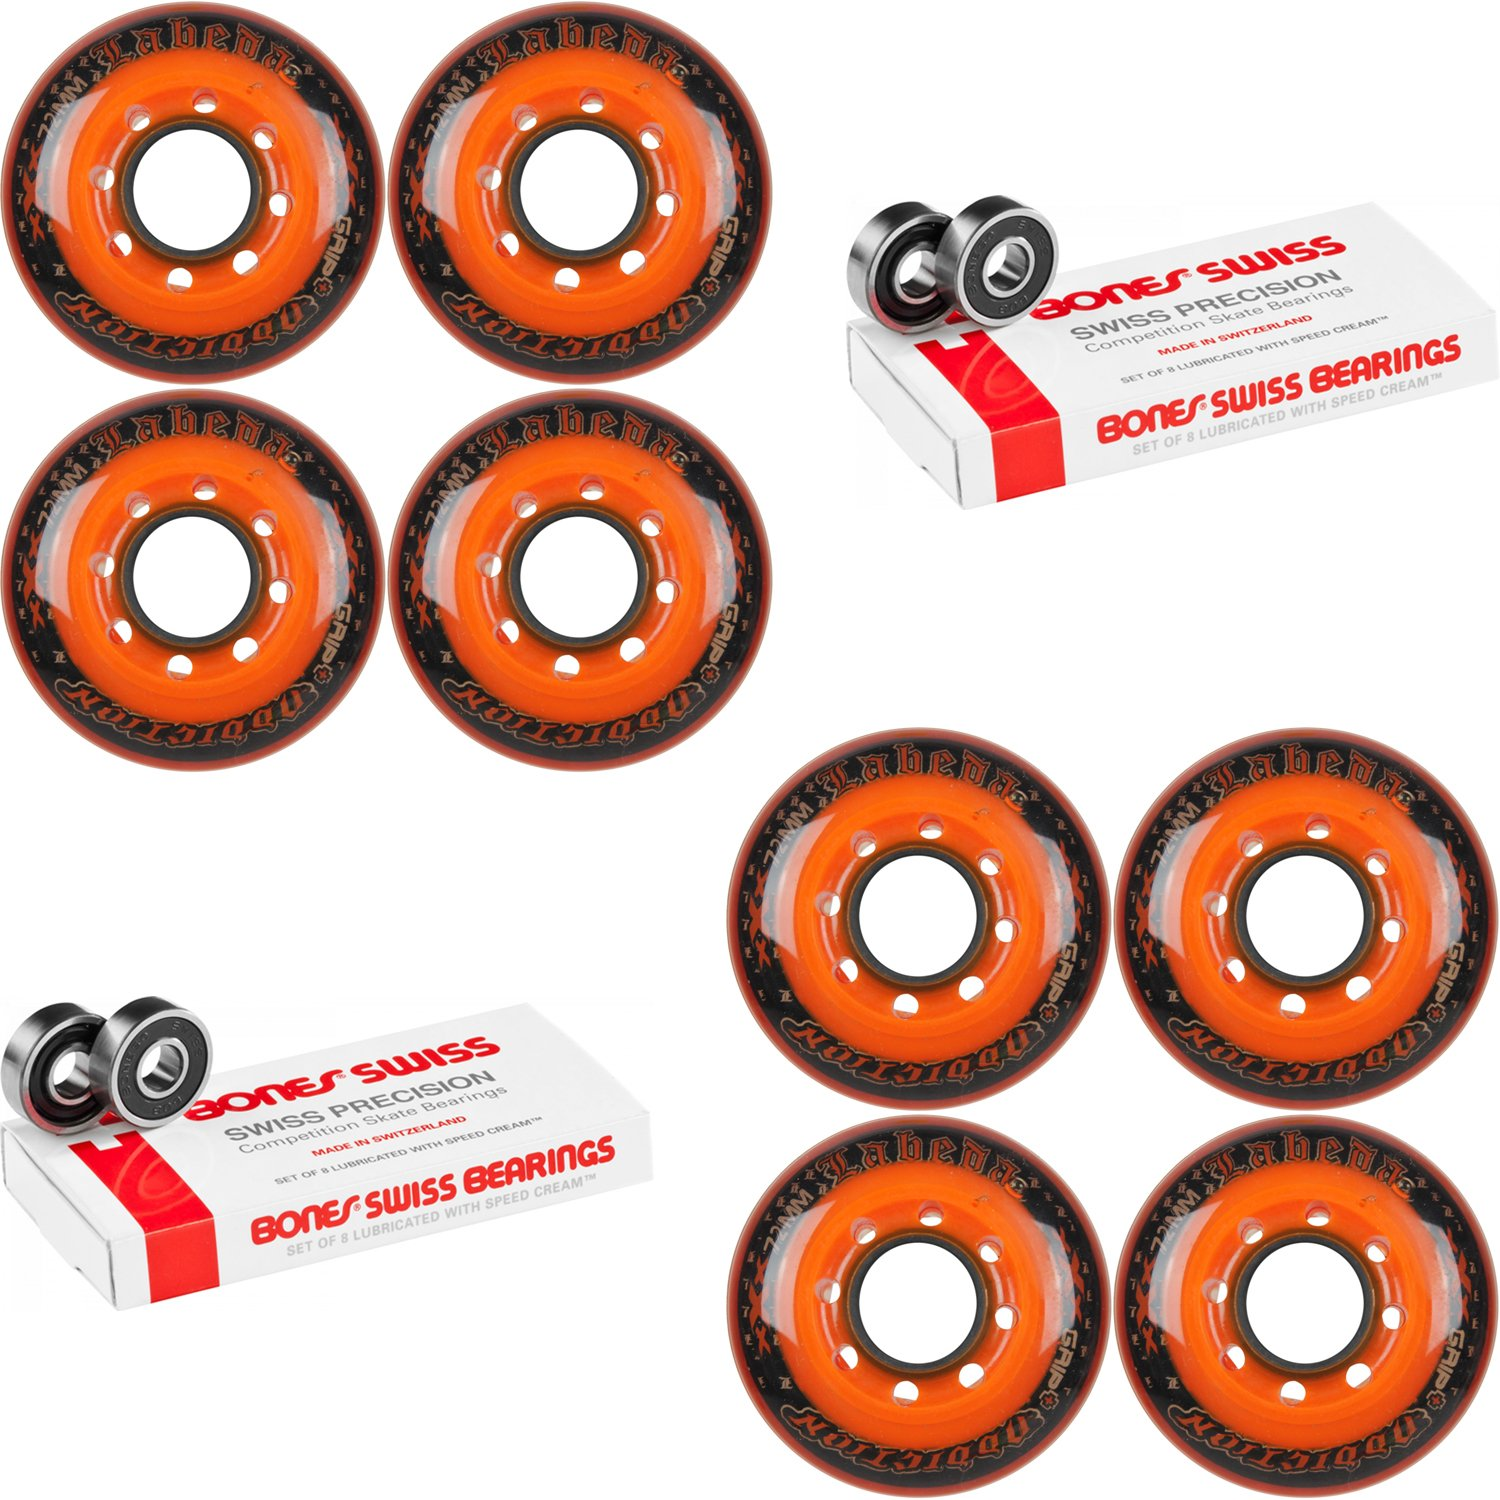 Labeda Addiction Wheels Addiction XXX Grip+ 72mm Roller Hockey 8-Set Bones Swiss by Labeda